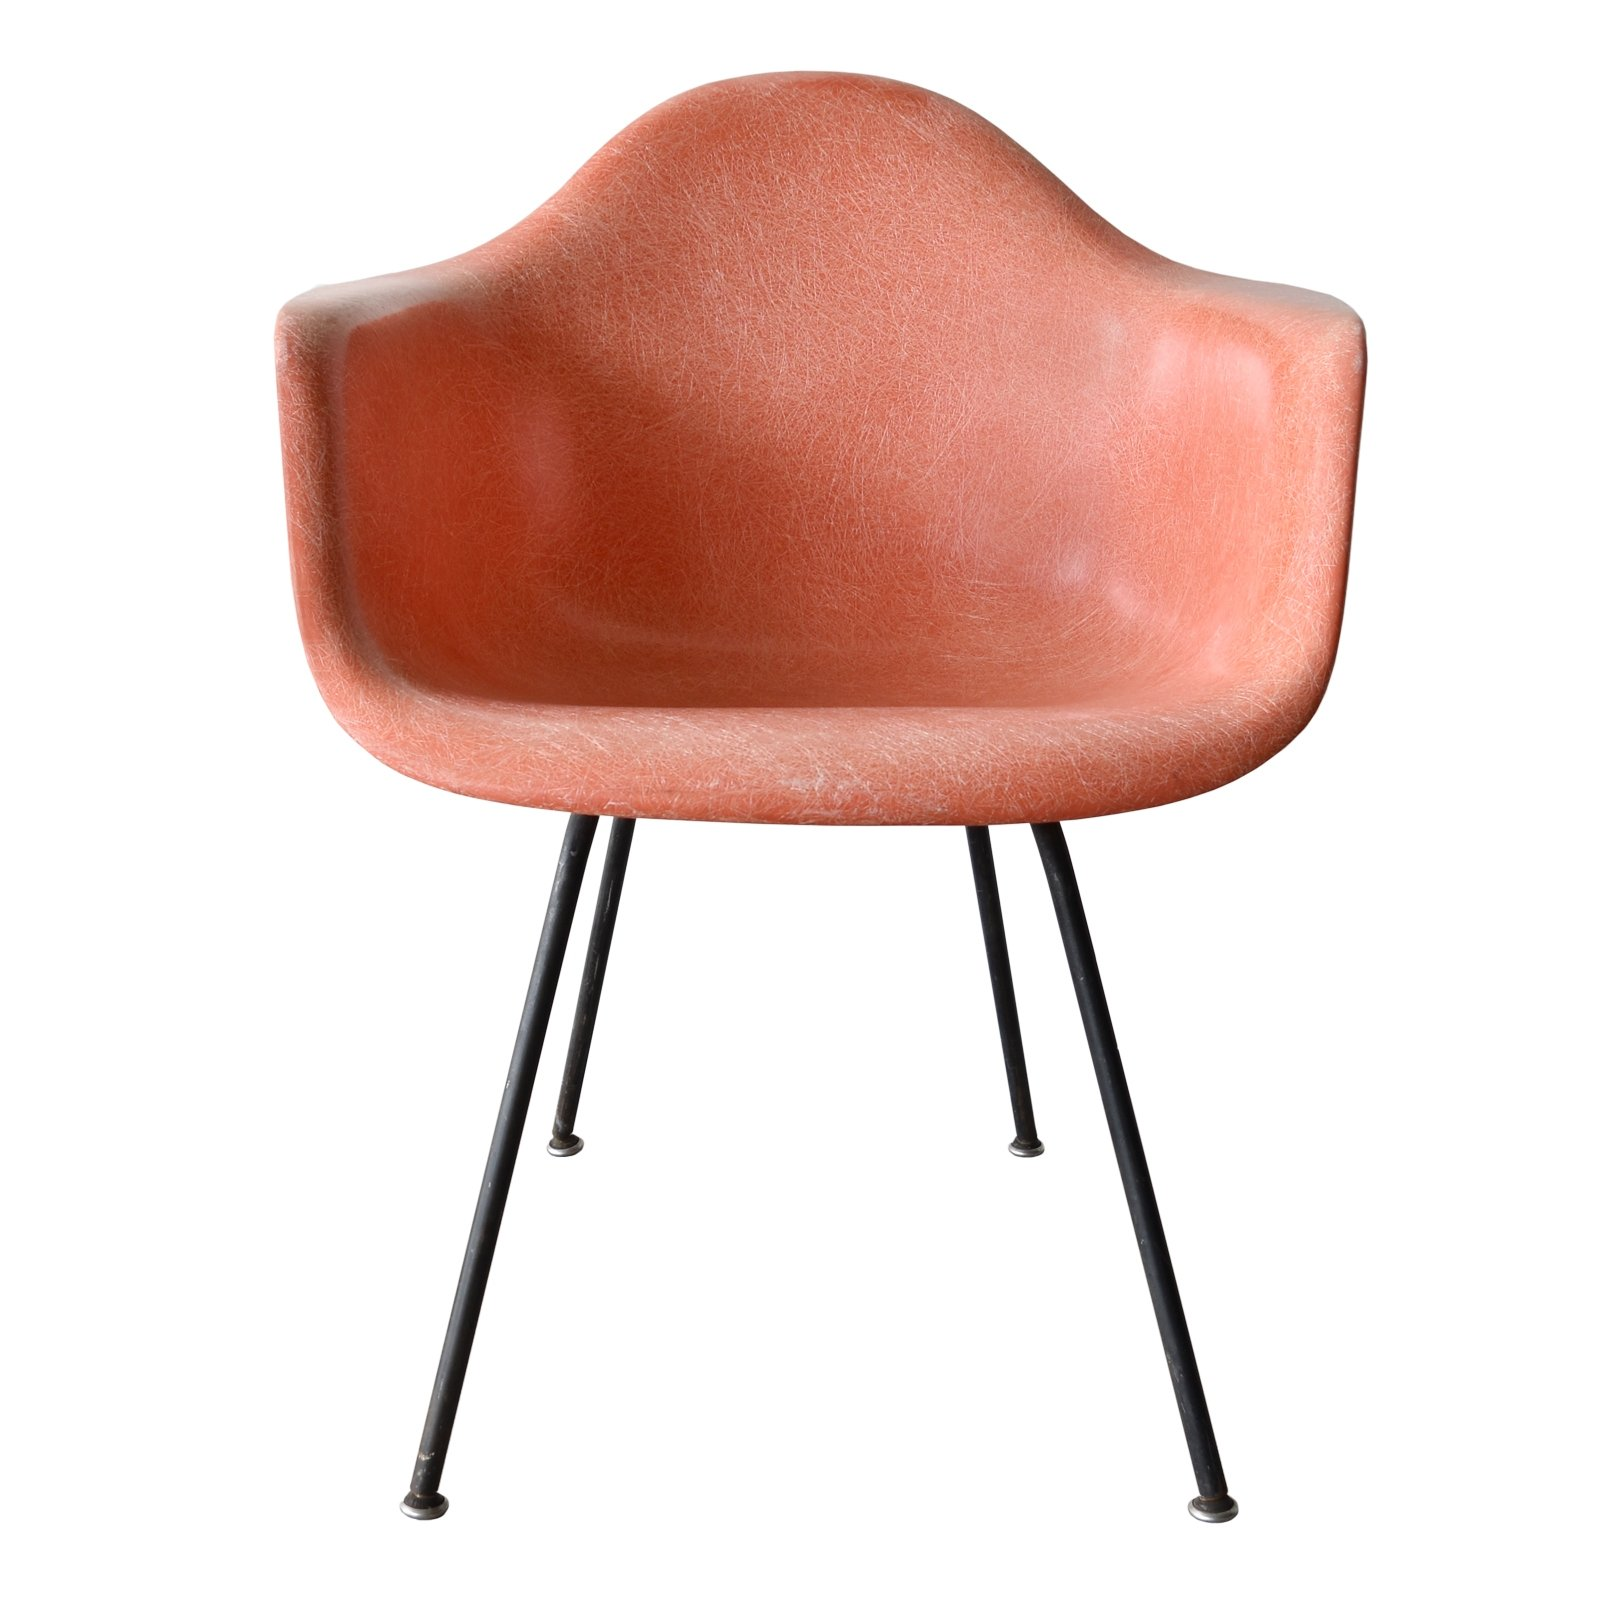 Dax salmon arm chair by charles ray eames for herman miller 1950s 5 - Herman miller chair eames ...